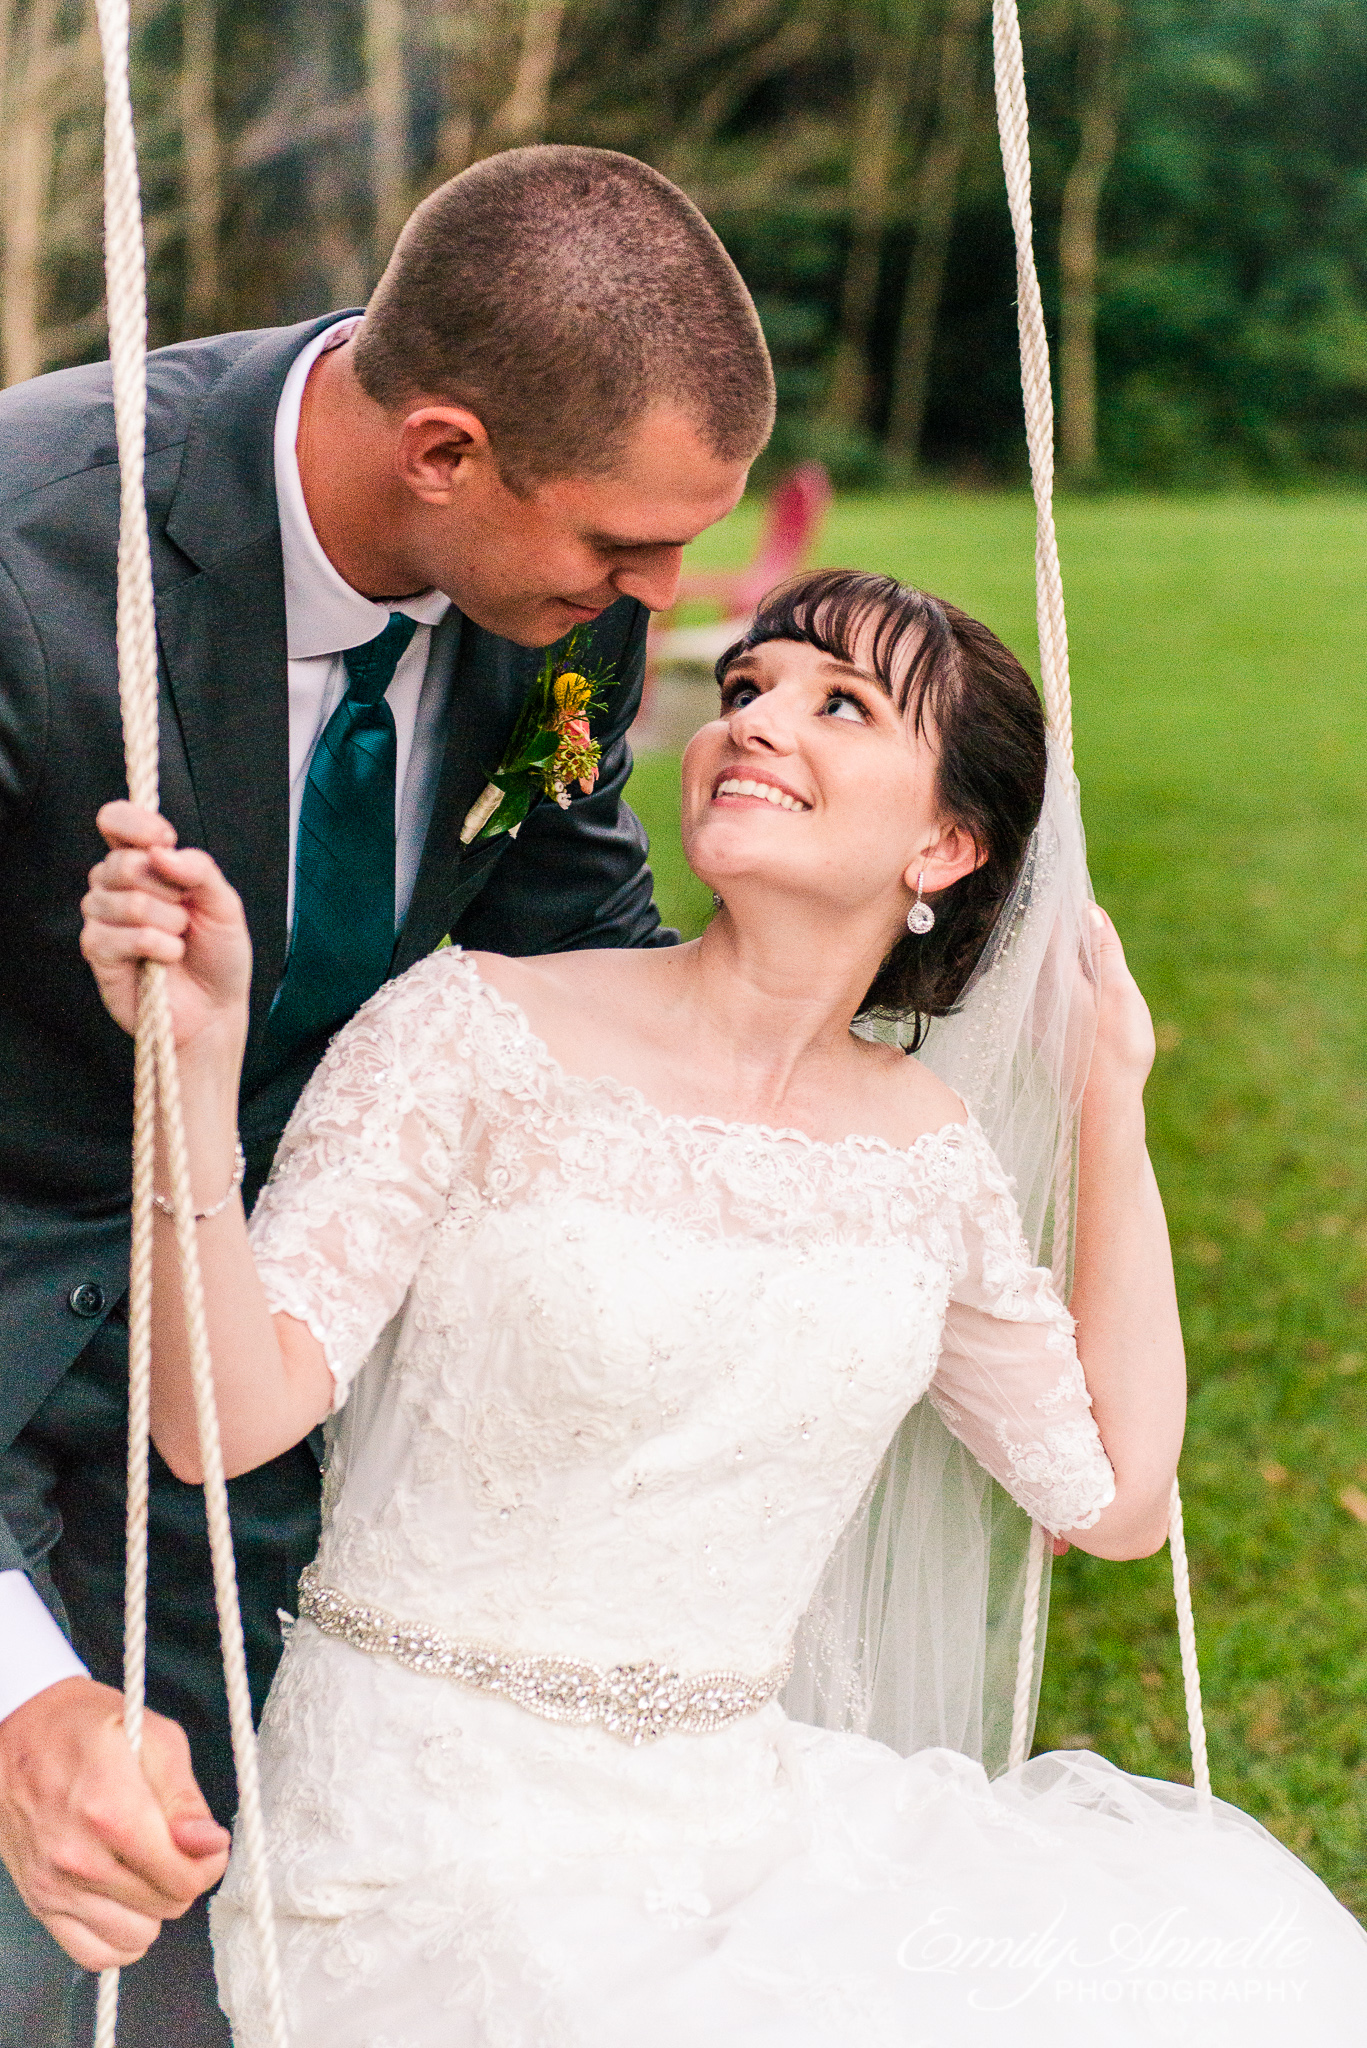 A bride and groom look at each other while enjoying a swing hanging from a tree after their country wedding at Amber Grove near Richmond, Virginia